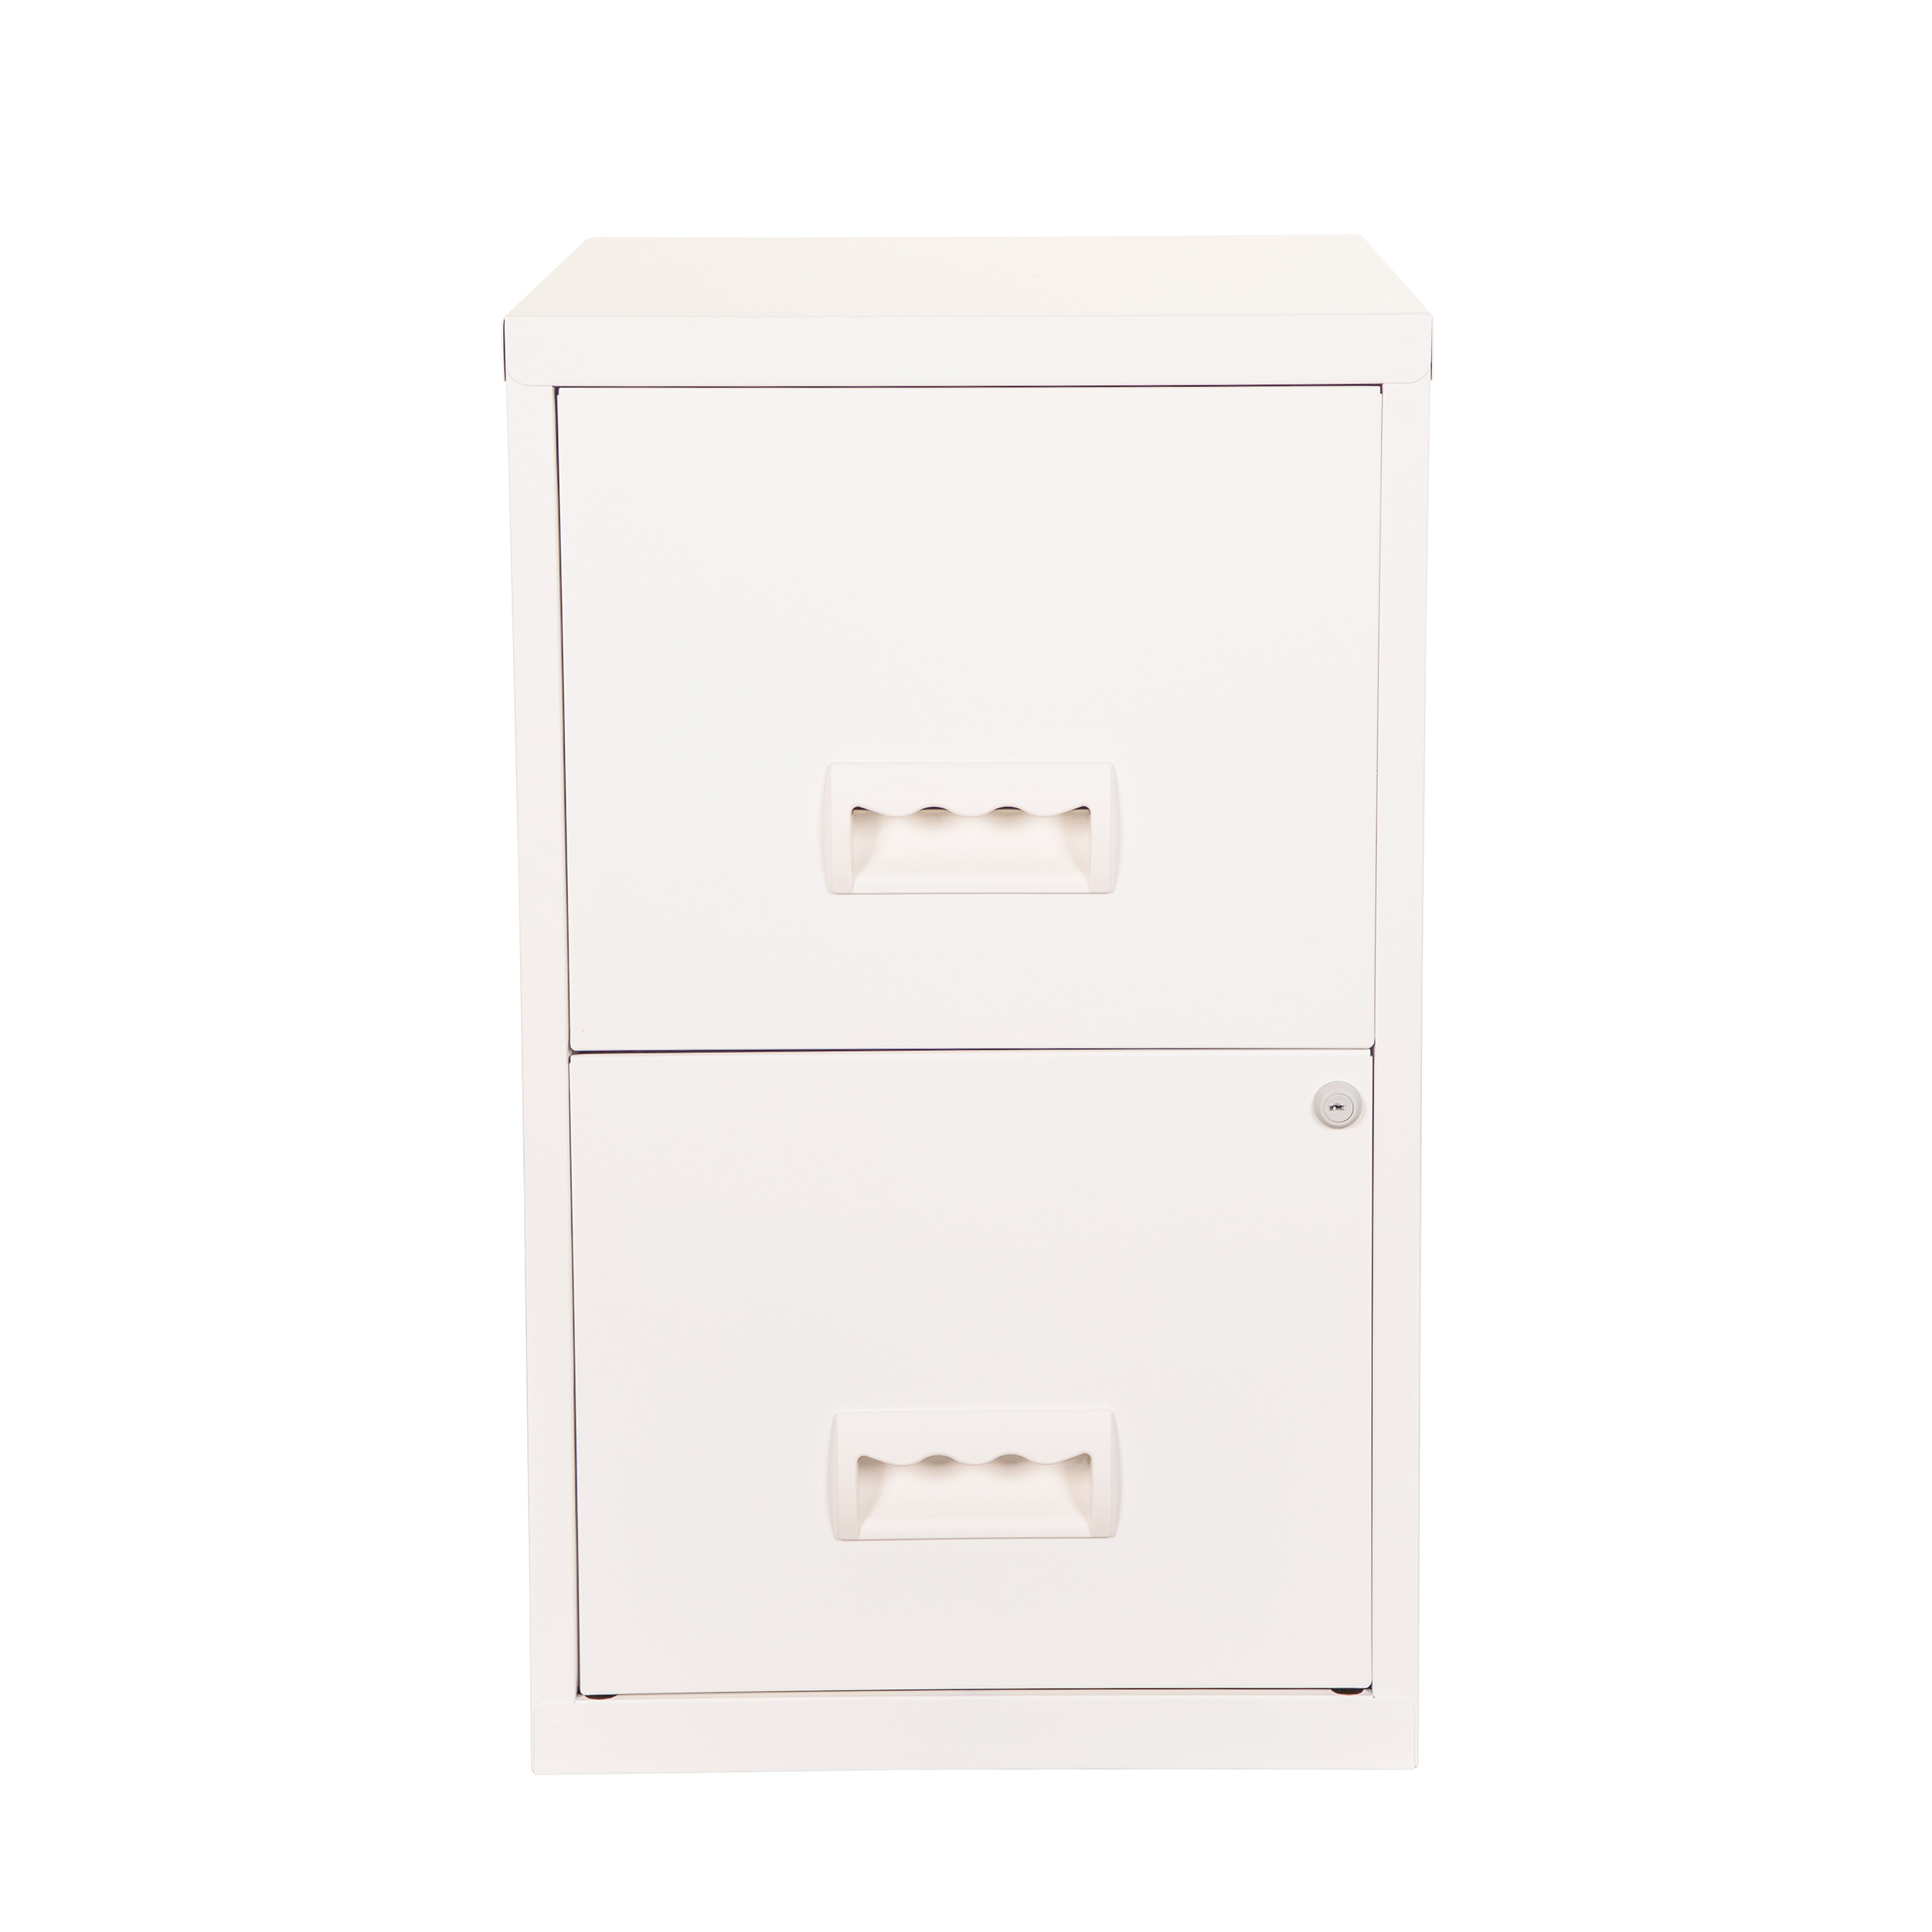 Filing cabinets or accesories Pierre Henry Maxi Filing Cabinet 2 Drawer A4 White Ref 095793